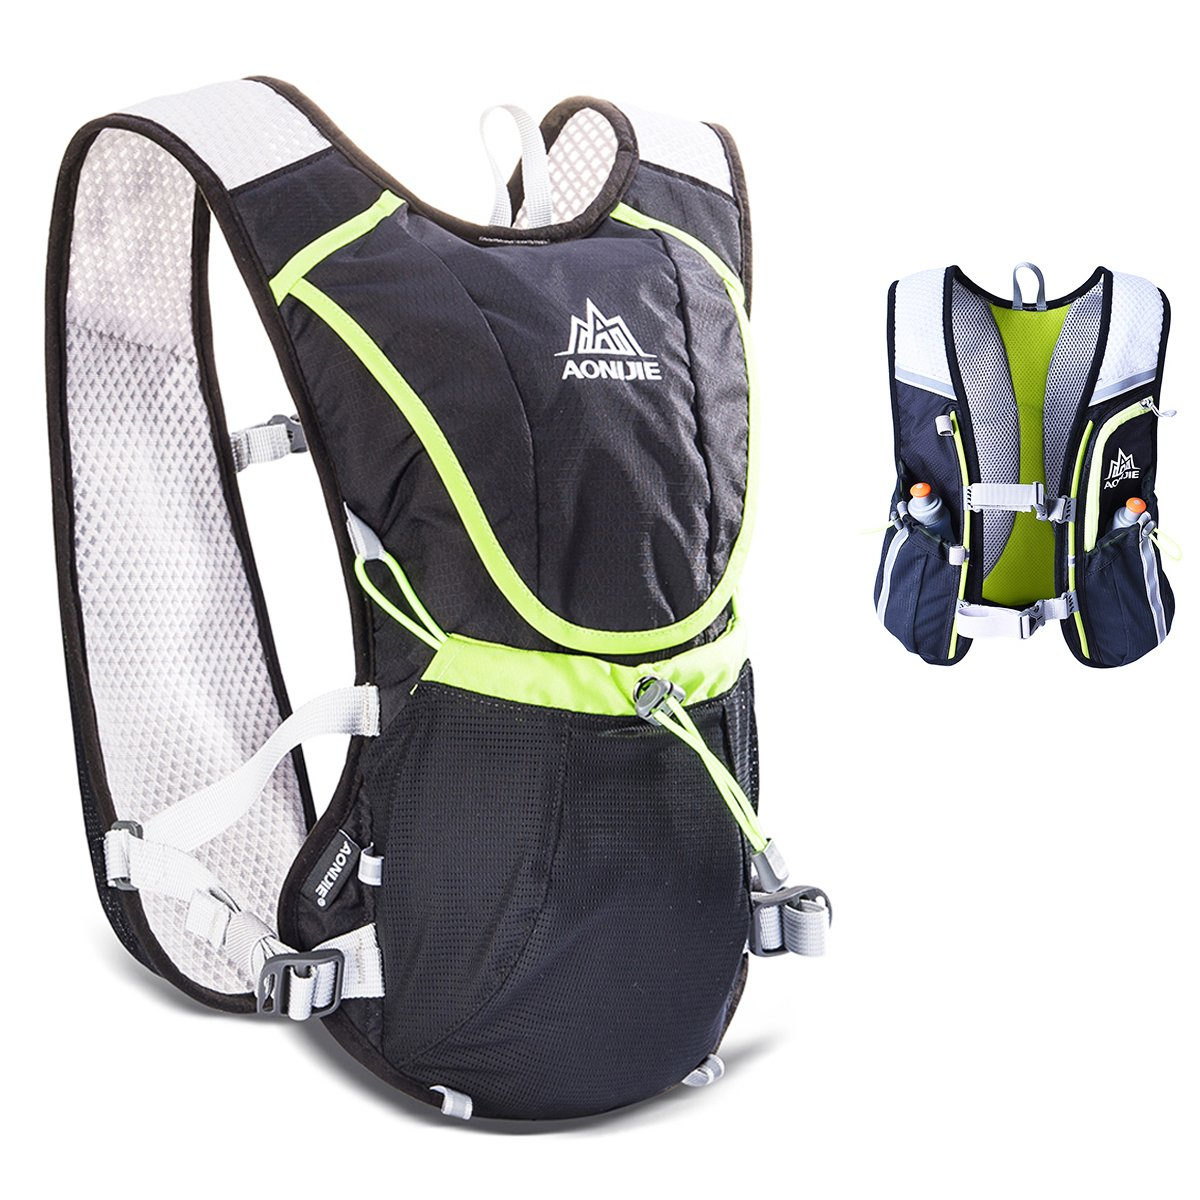 TRIWONDER Hydration Pack Backpack Professional 8L Outdoors Mochilas Trail Marathoner Running Race Cycling Hydration Vest (Black - Only Vest)